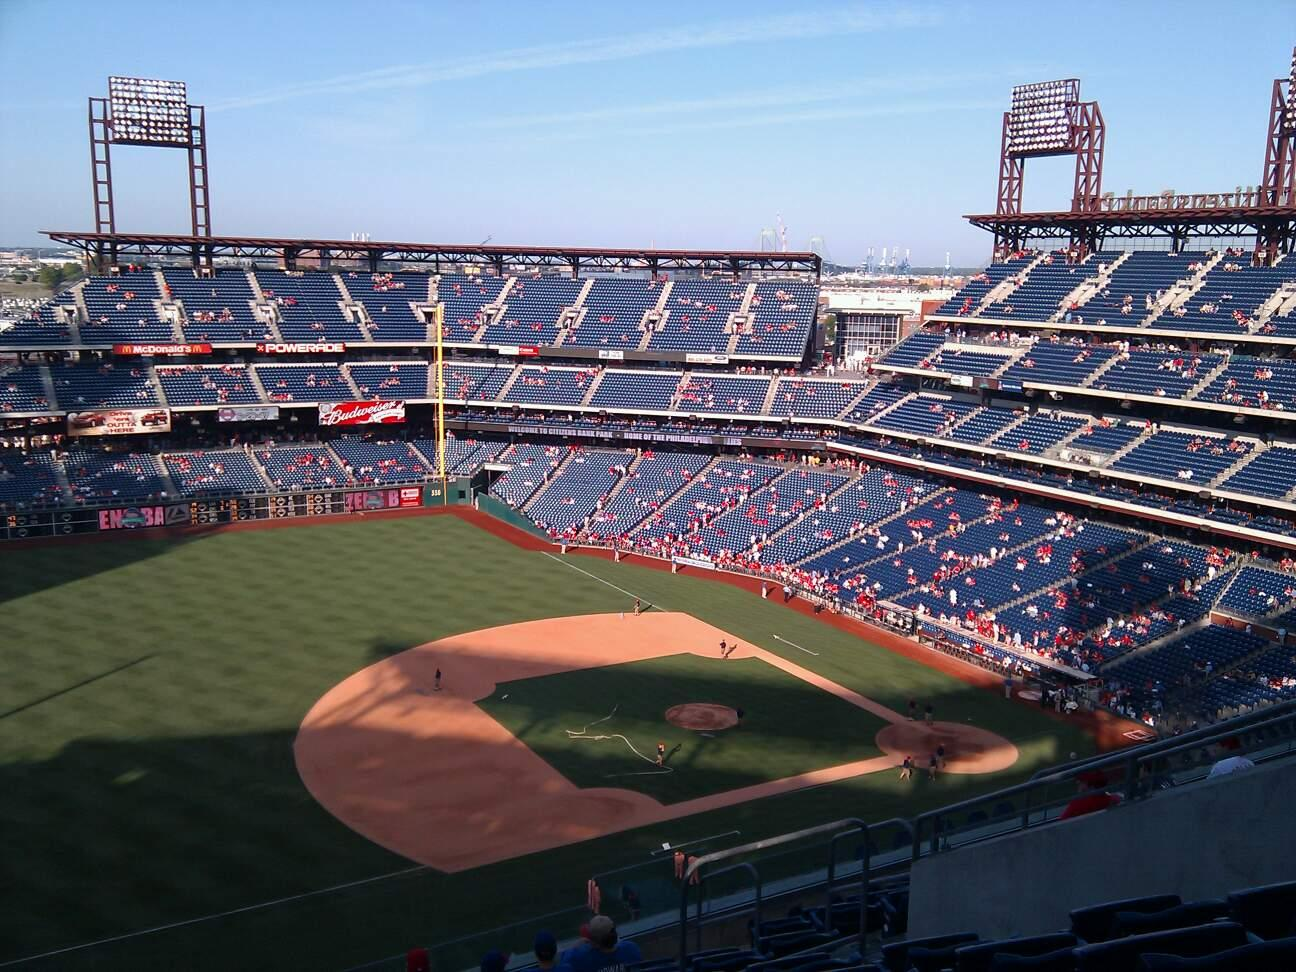 Citizens Bank Park Section 429 Row 11 Seat 10